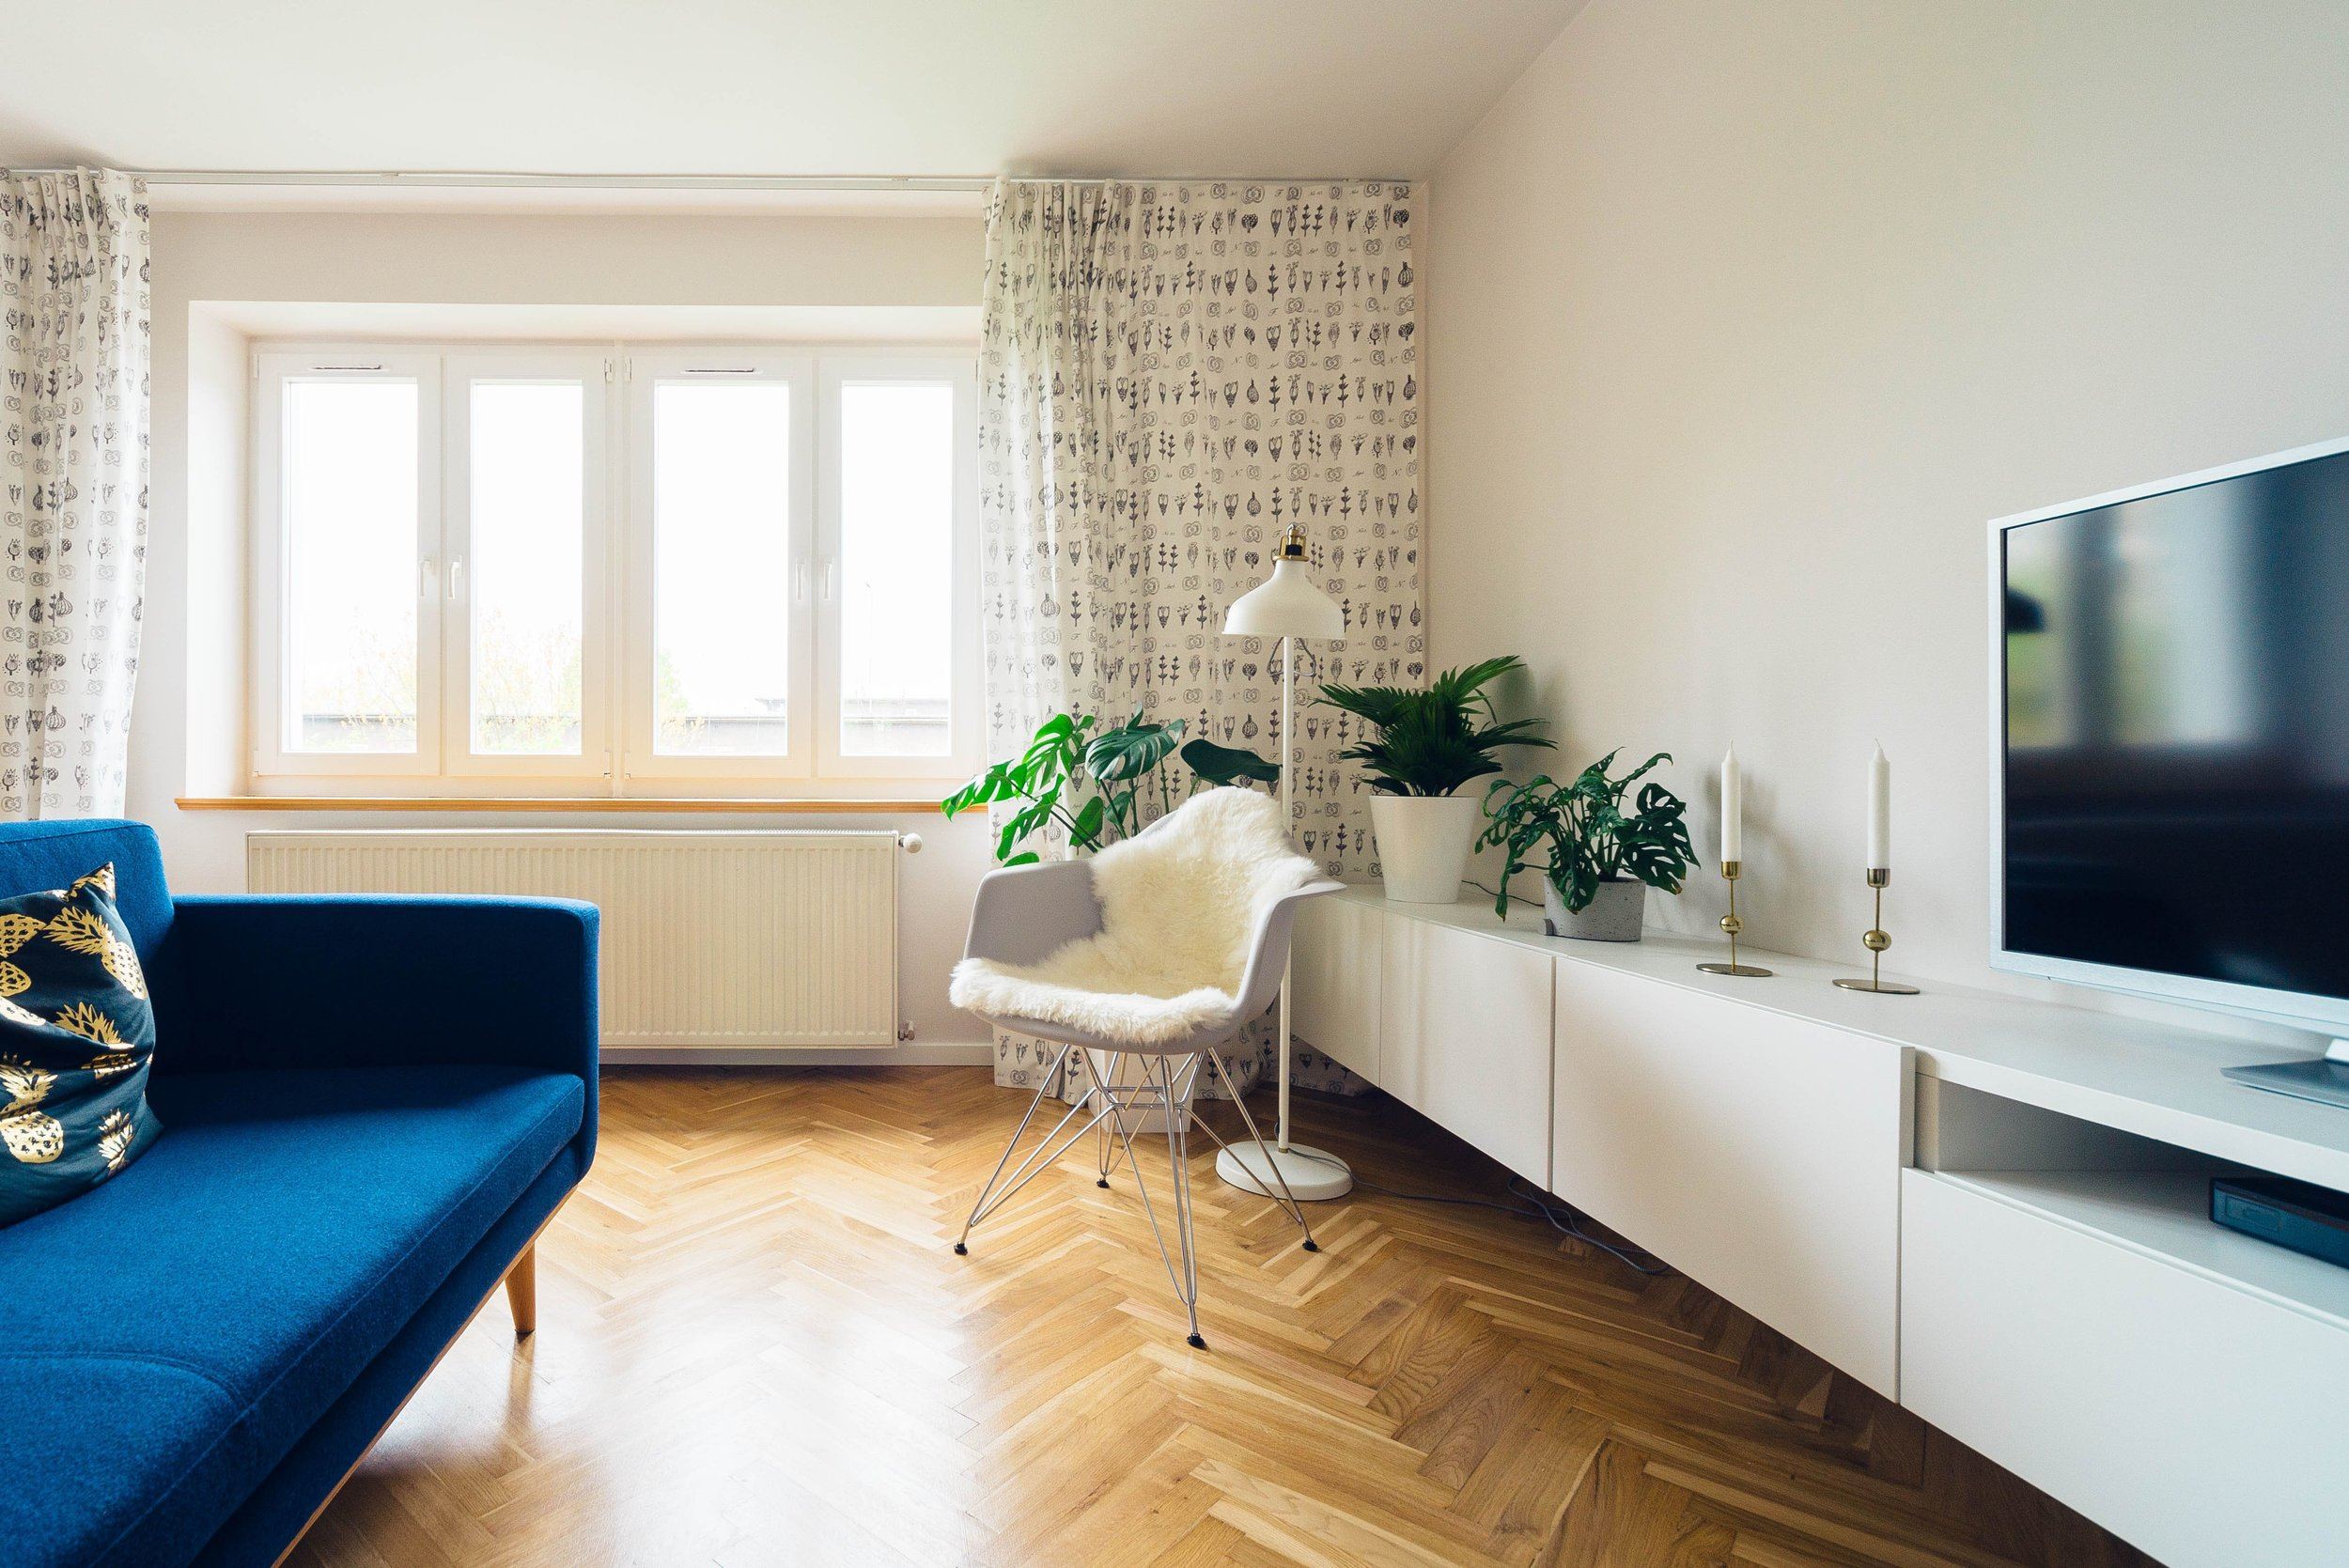 Home Essentials Checklist: What to Buy Before Moving In - Updater